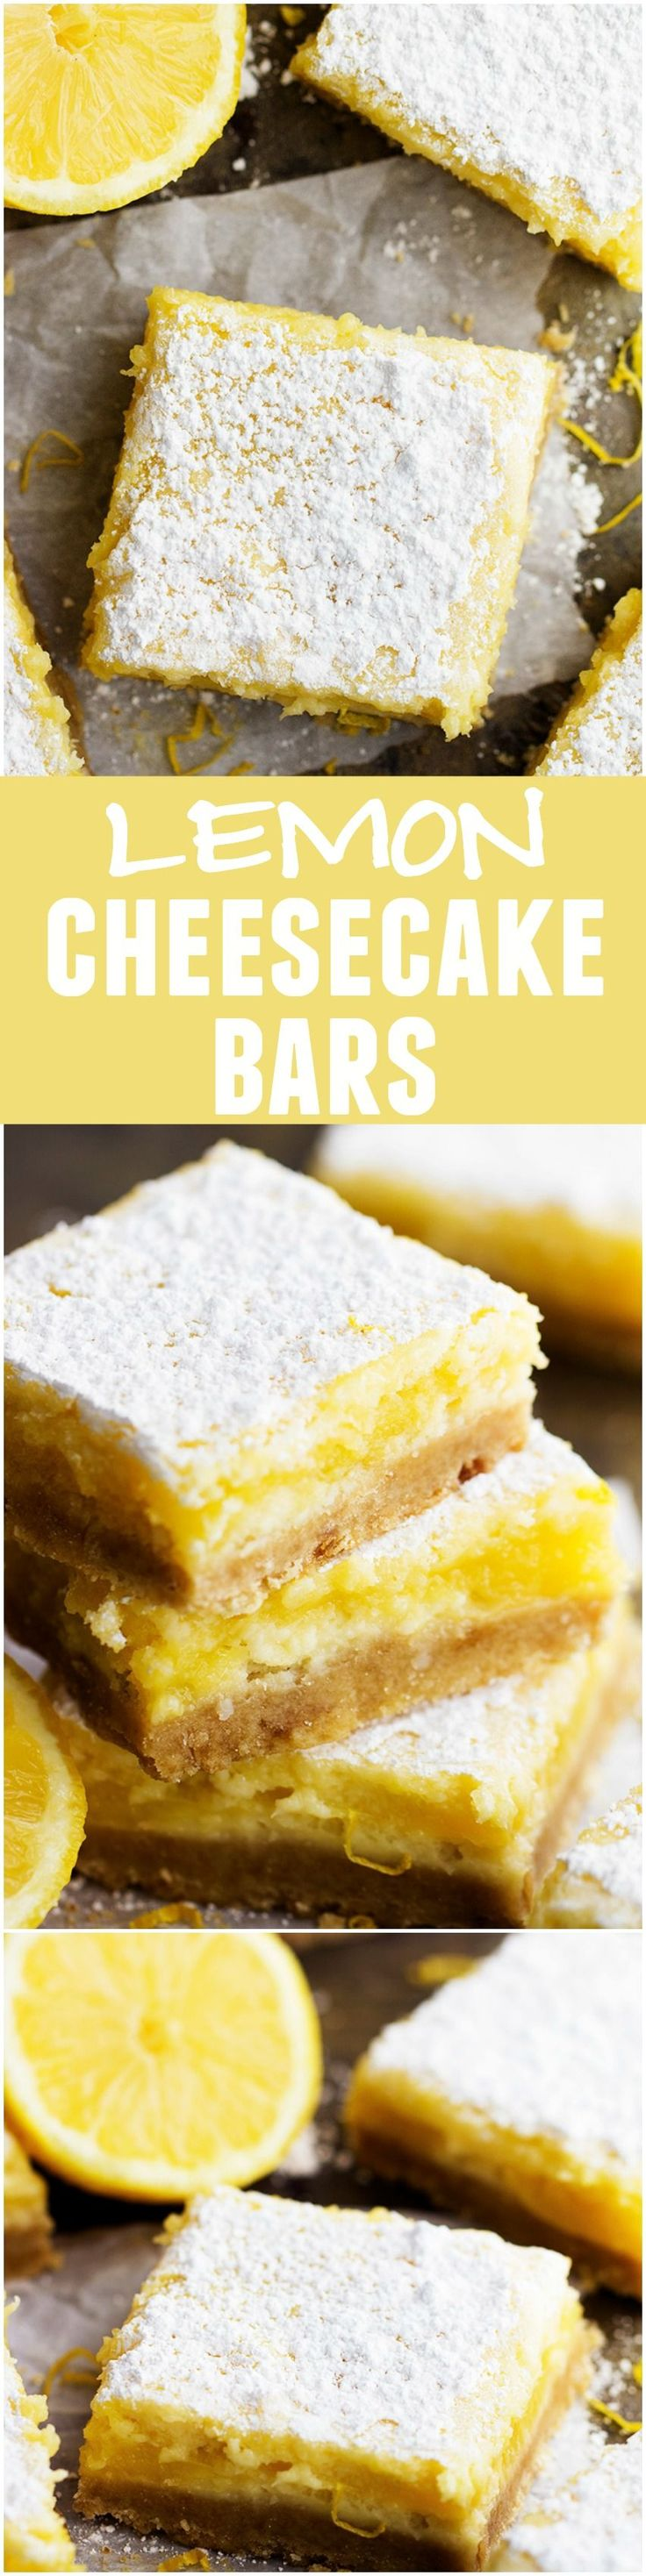 These are the absolute BEST lemon cheesecake bars! They will be raved about wherever they go!